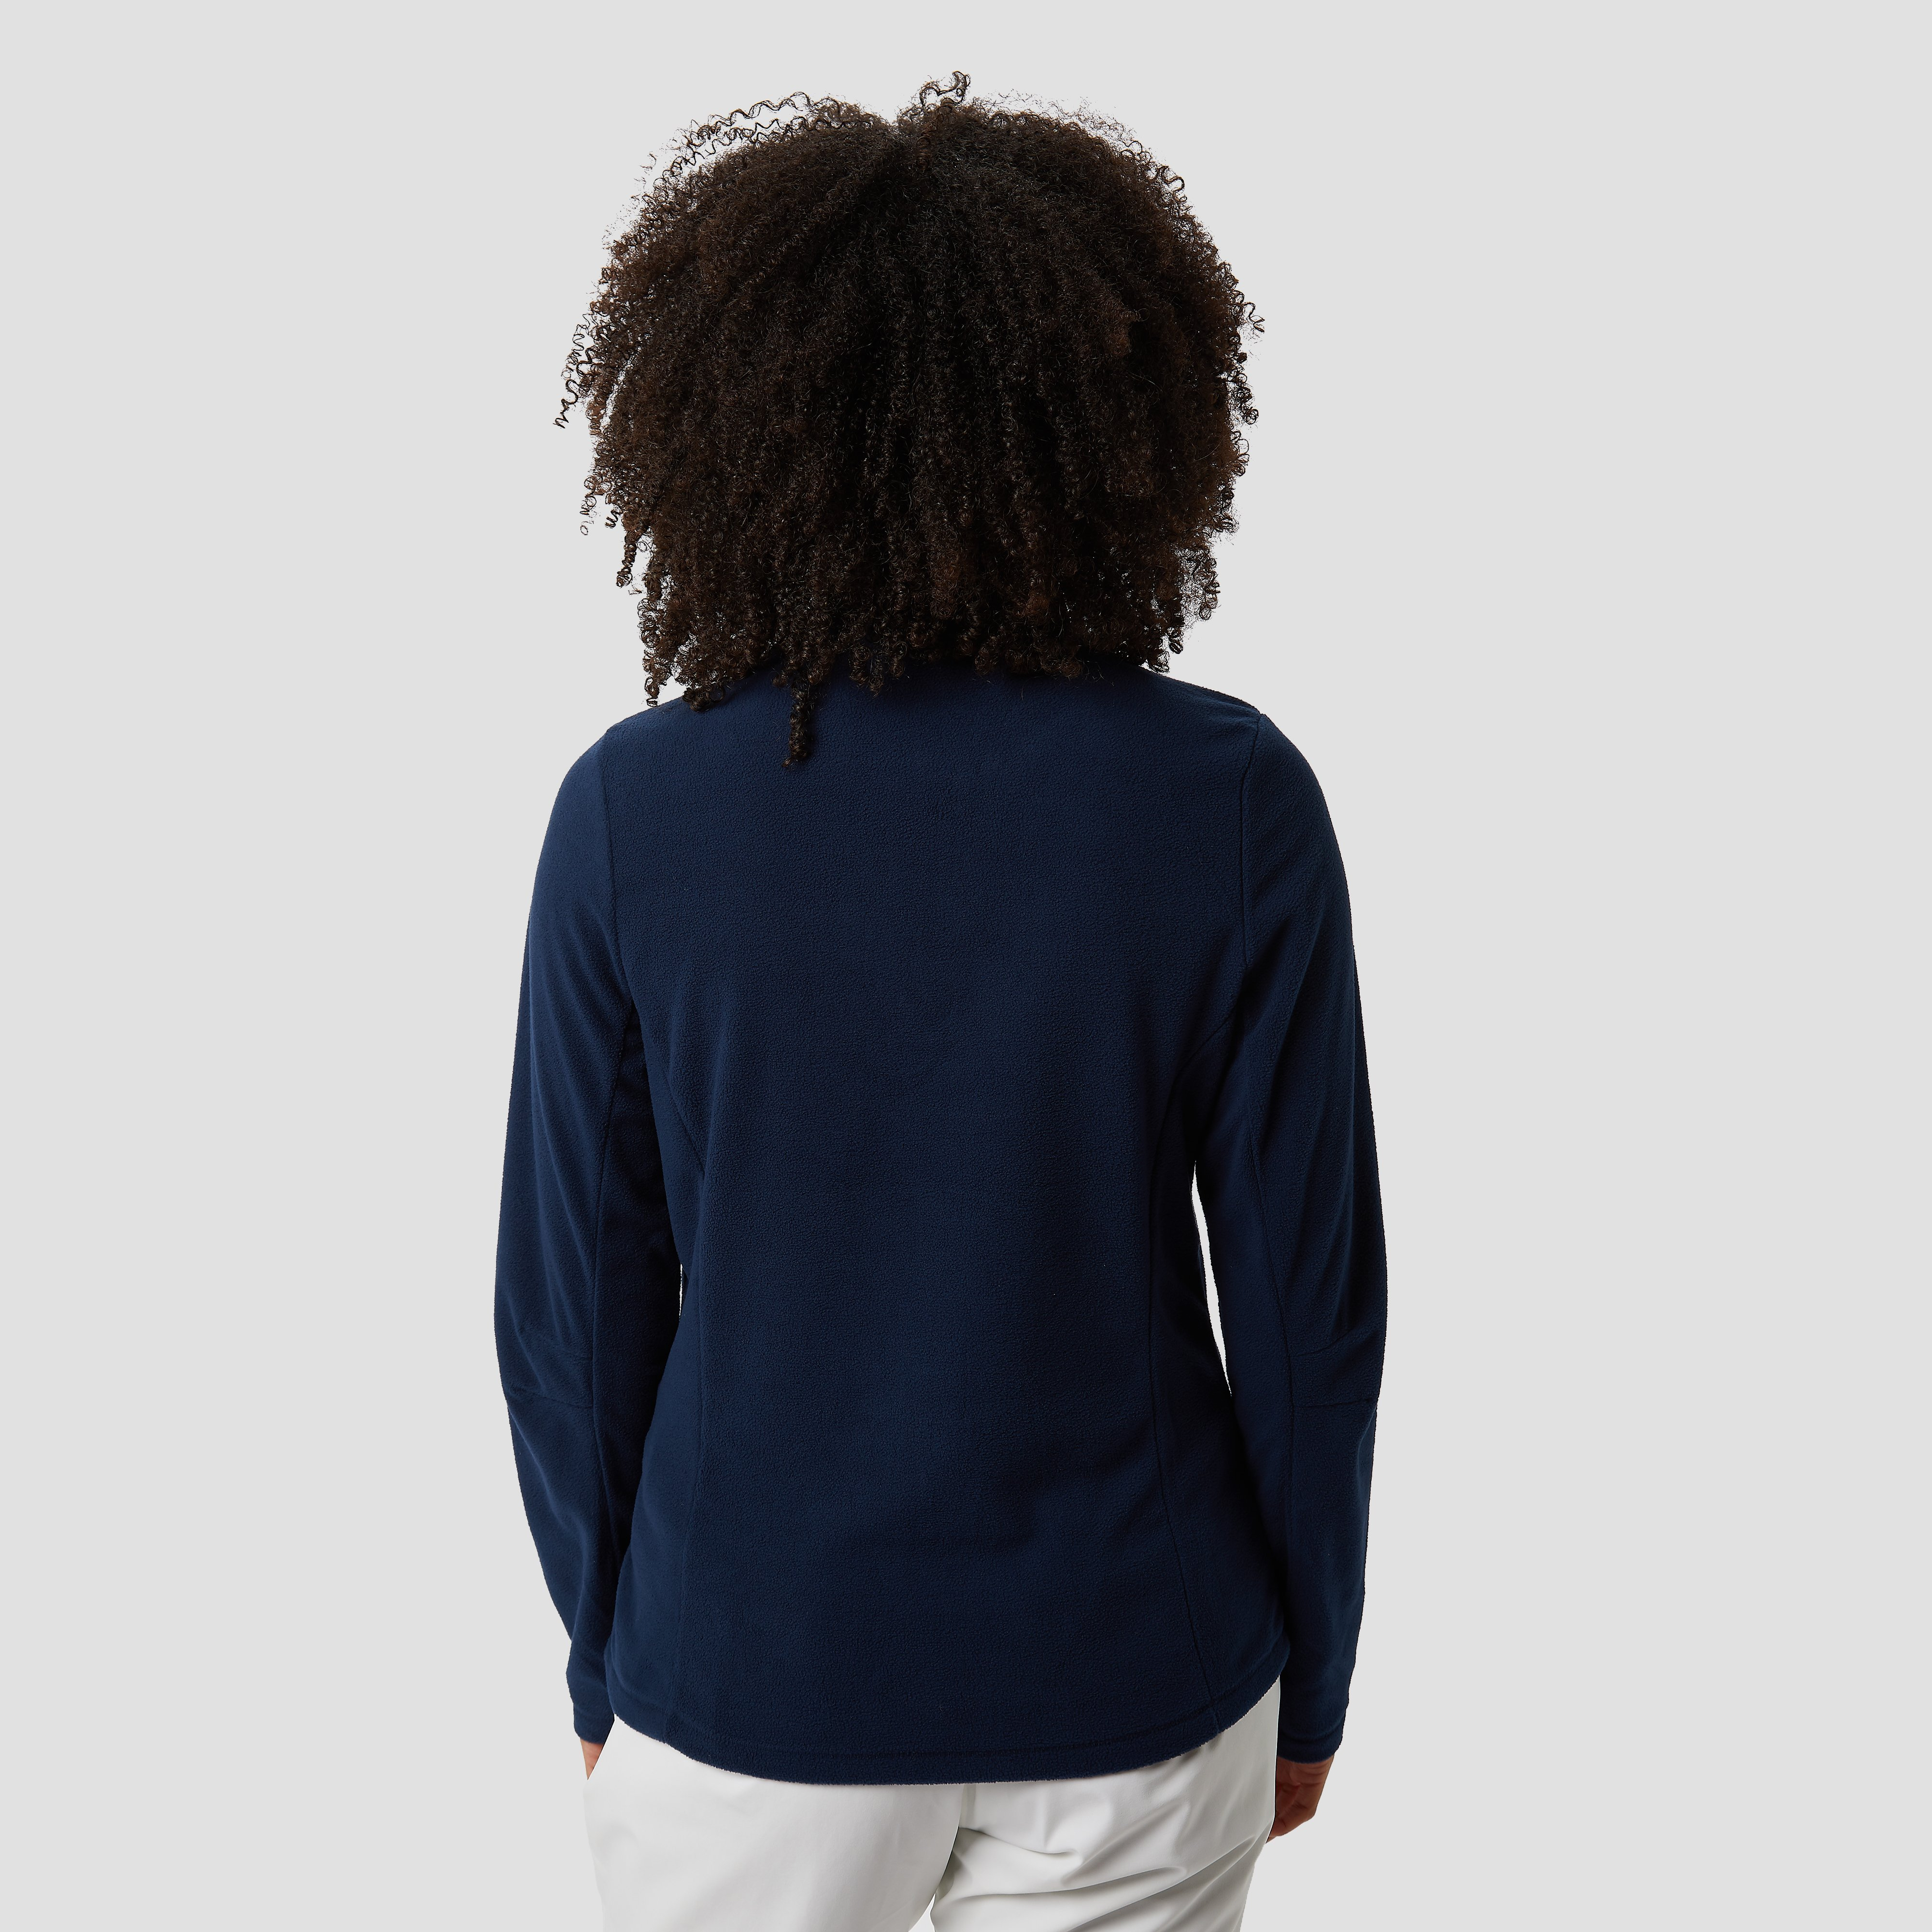 PROTEST MUTEY PULLY BLAUW DAMES